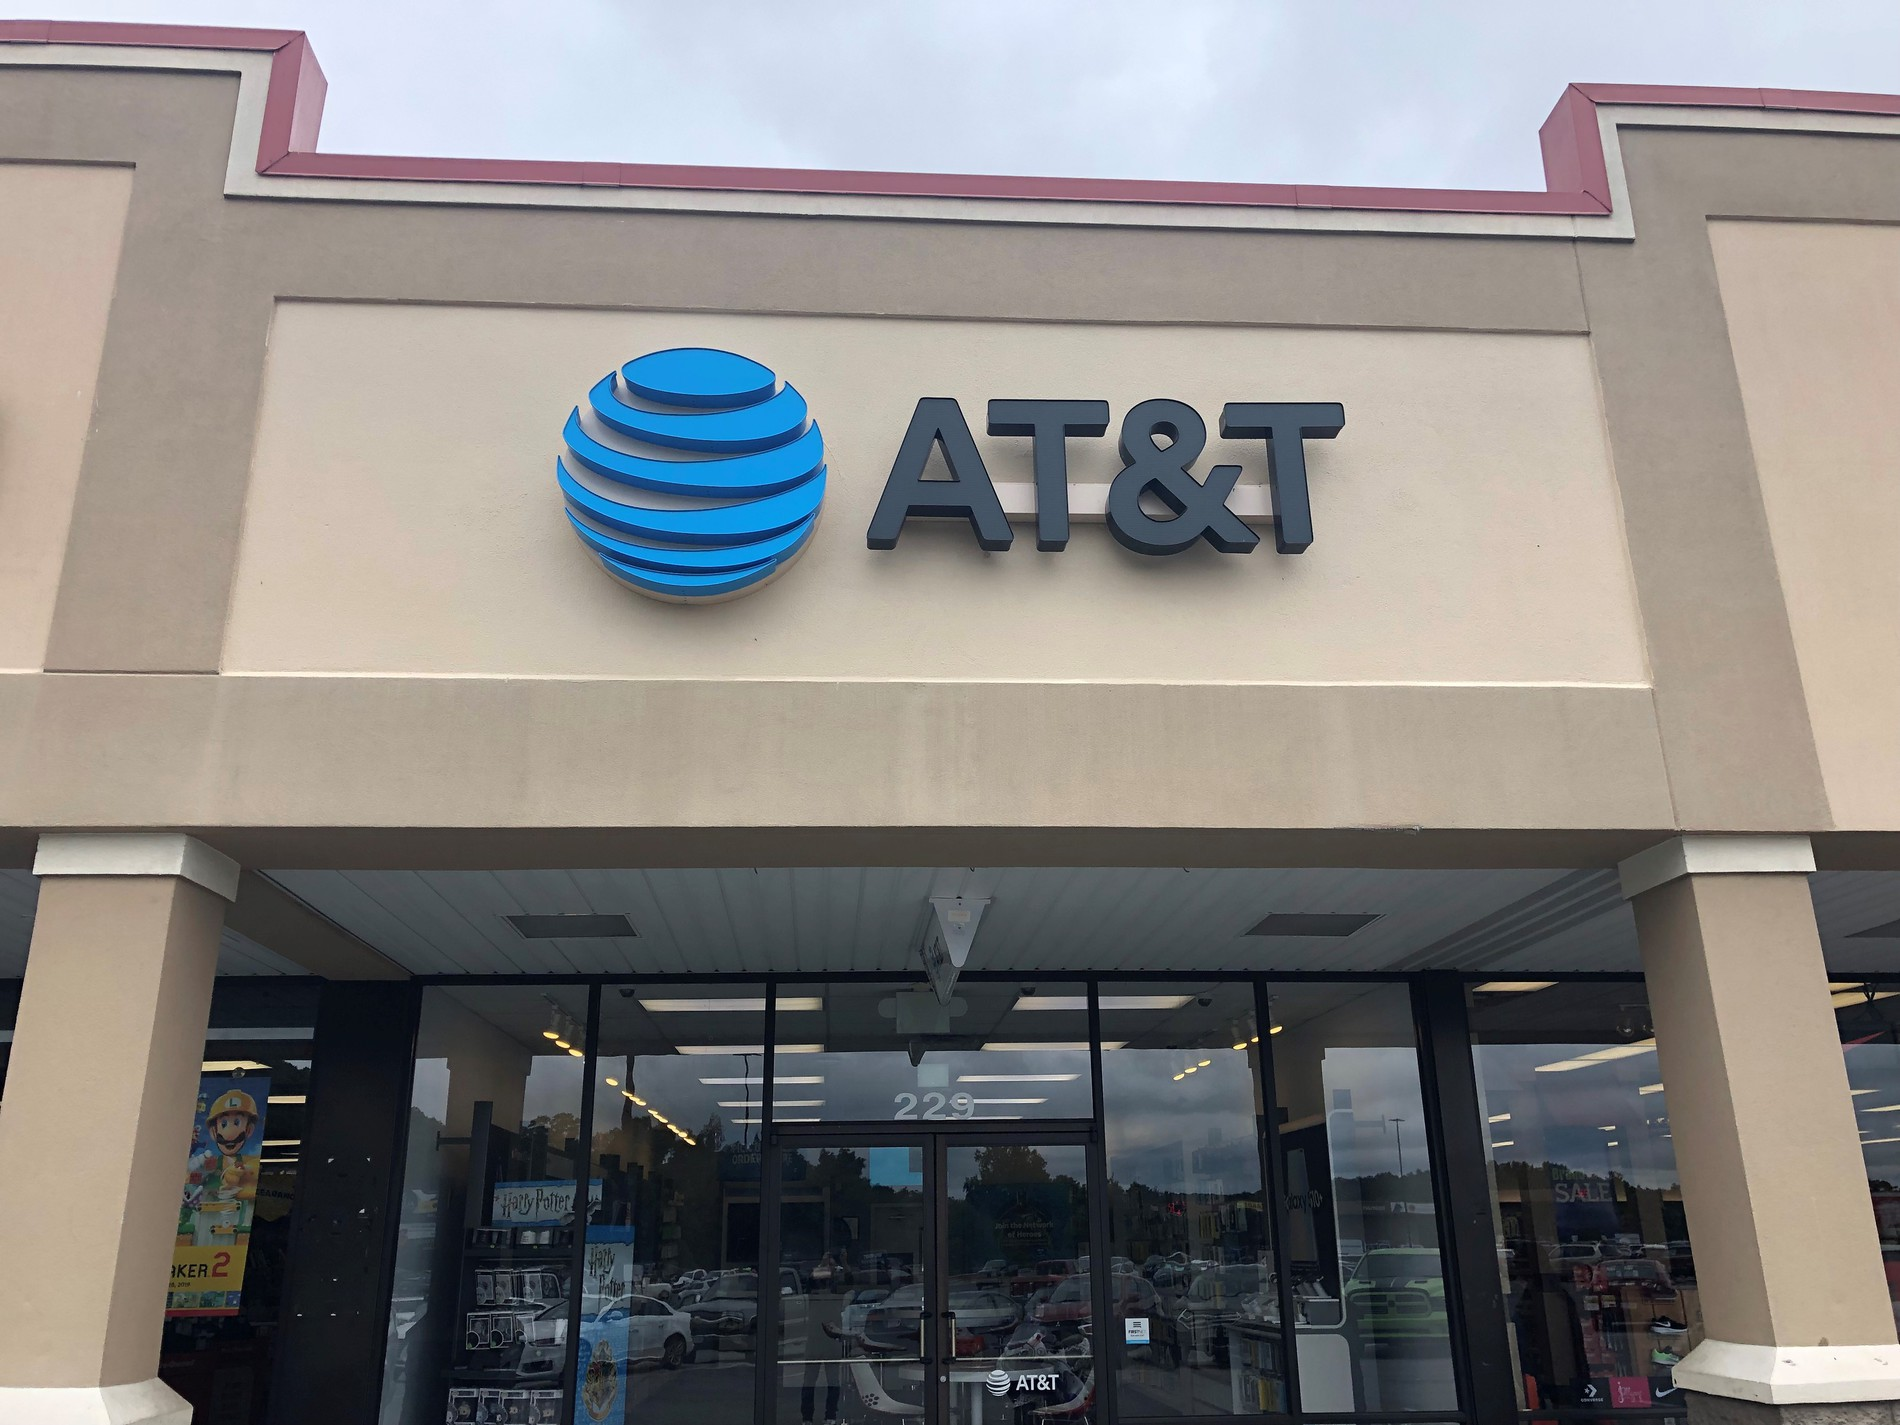 princeton store apple iphone 12 and samsung devices princeton wv at t princeton wv at t